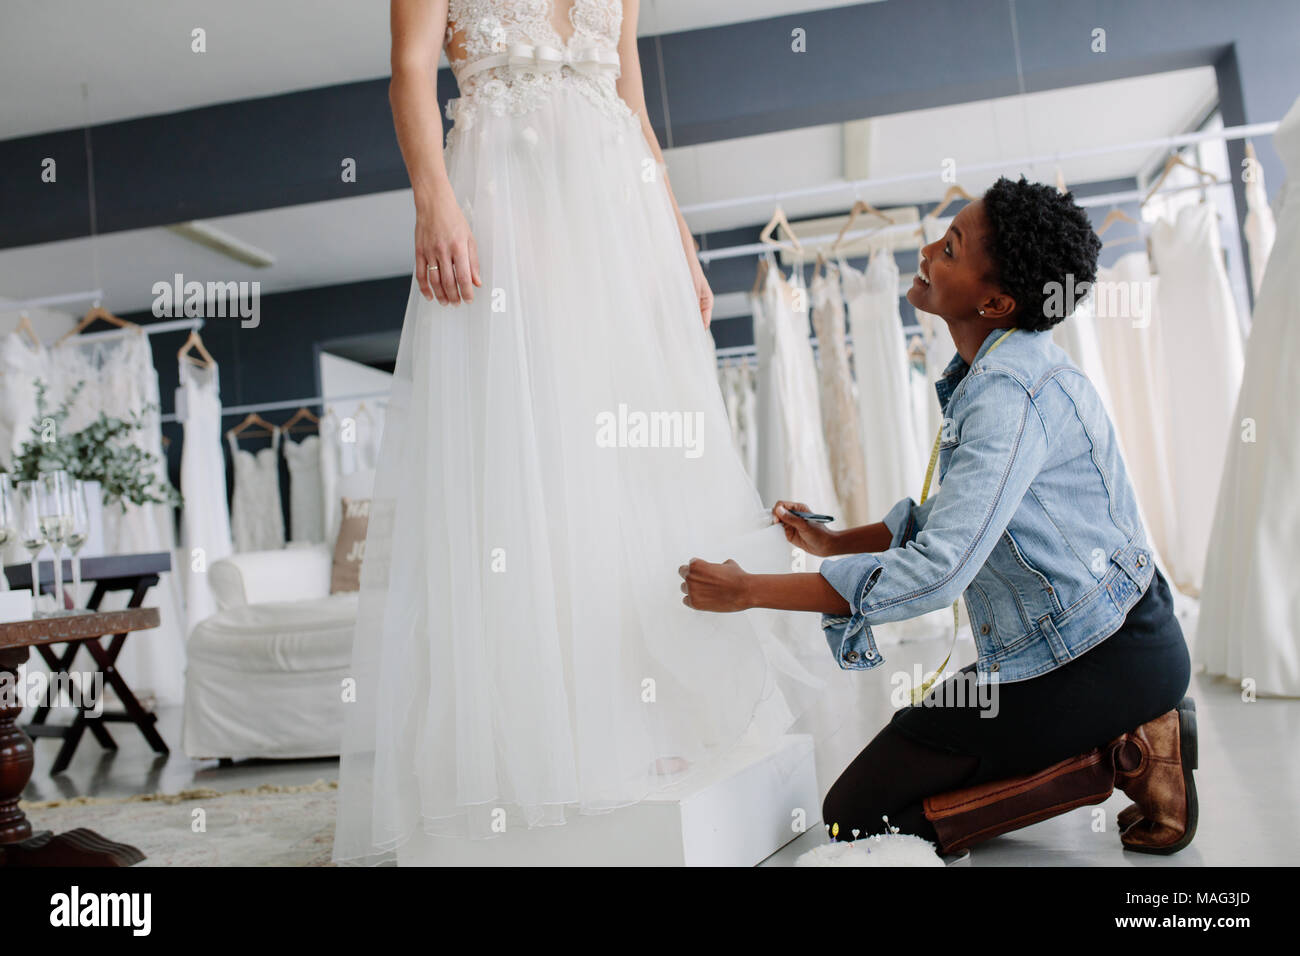 Woman making adjustment to bridal gown in wedding fashion store. Bride in her wedding dress with female dress designer making final adjustments on dre - Stock Image